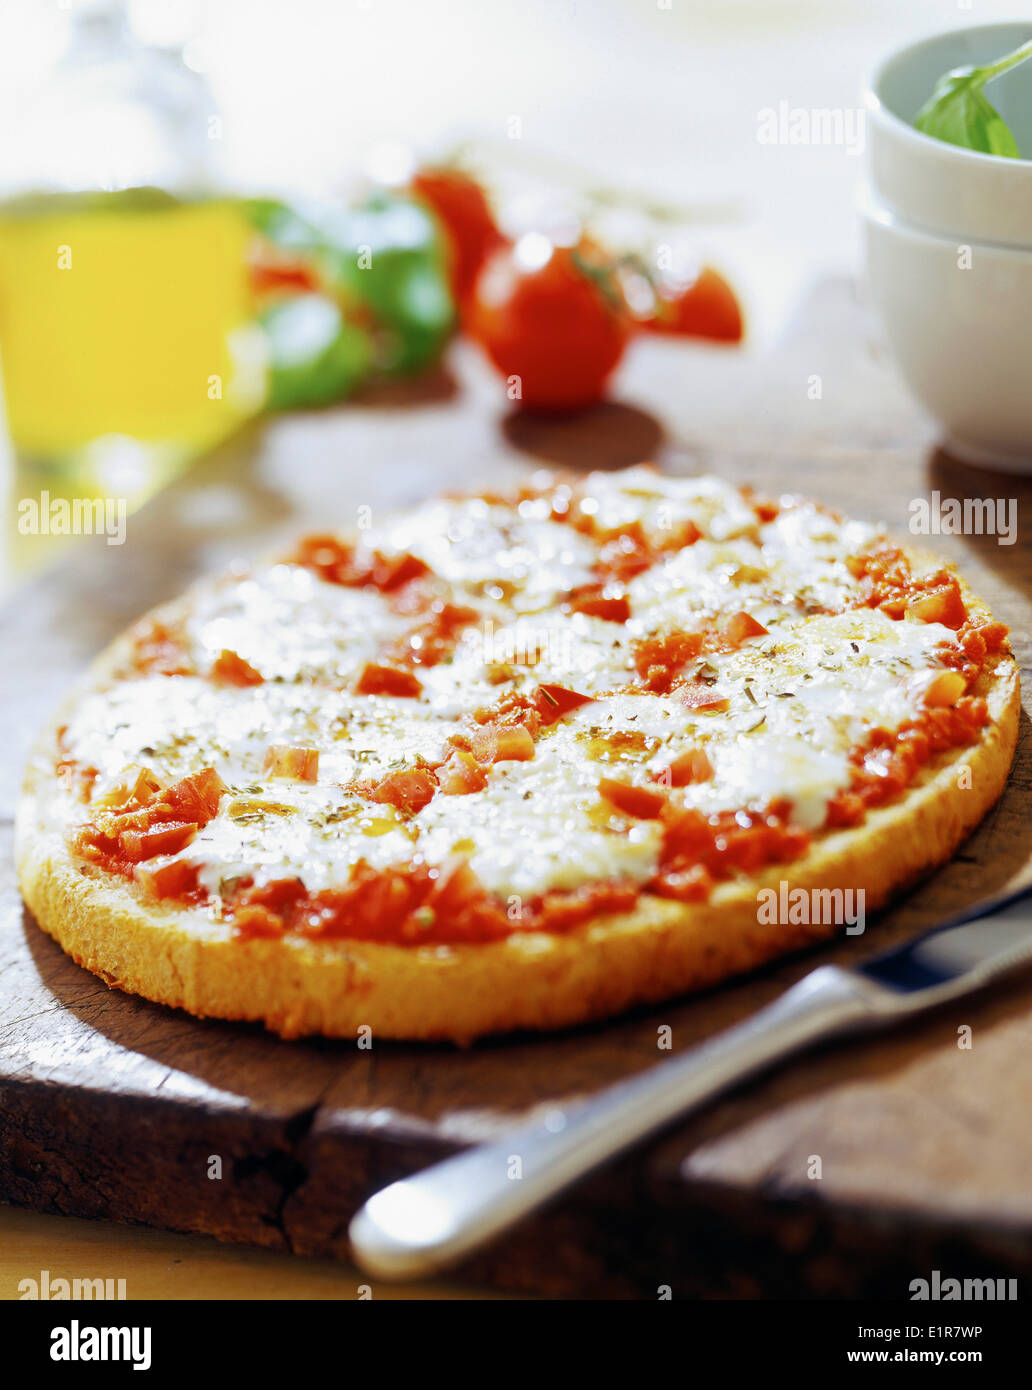 Pizza tomate-fromage Banque D'Images